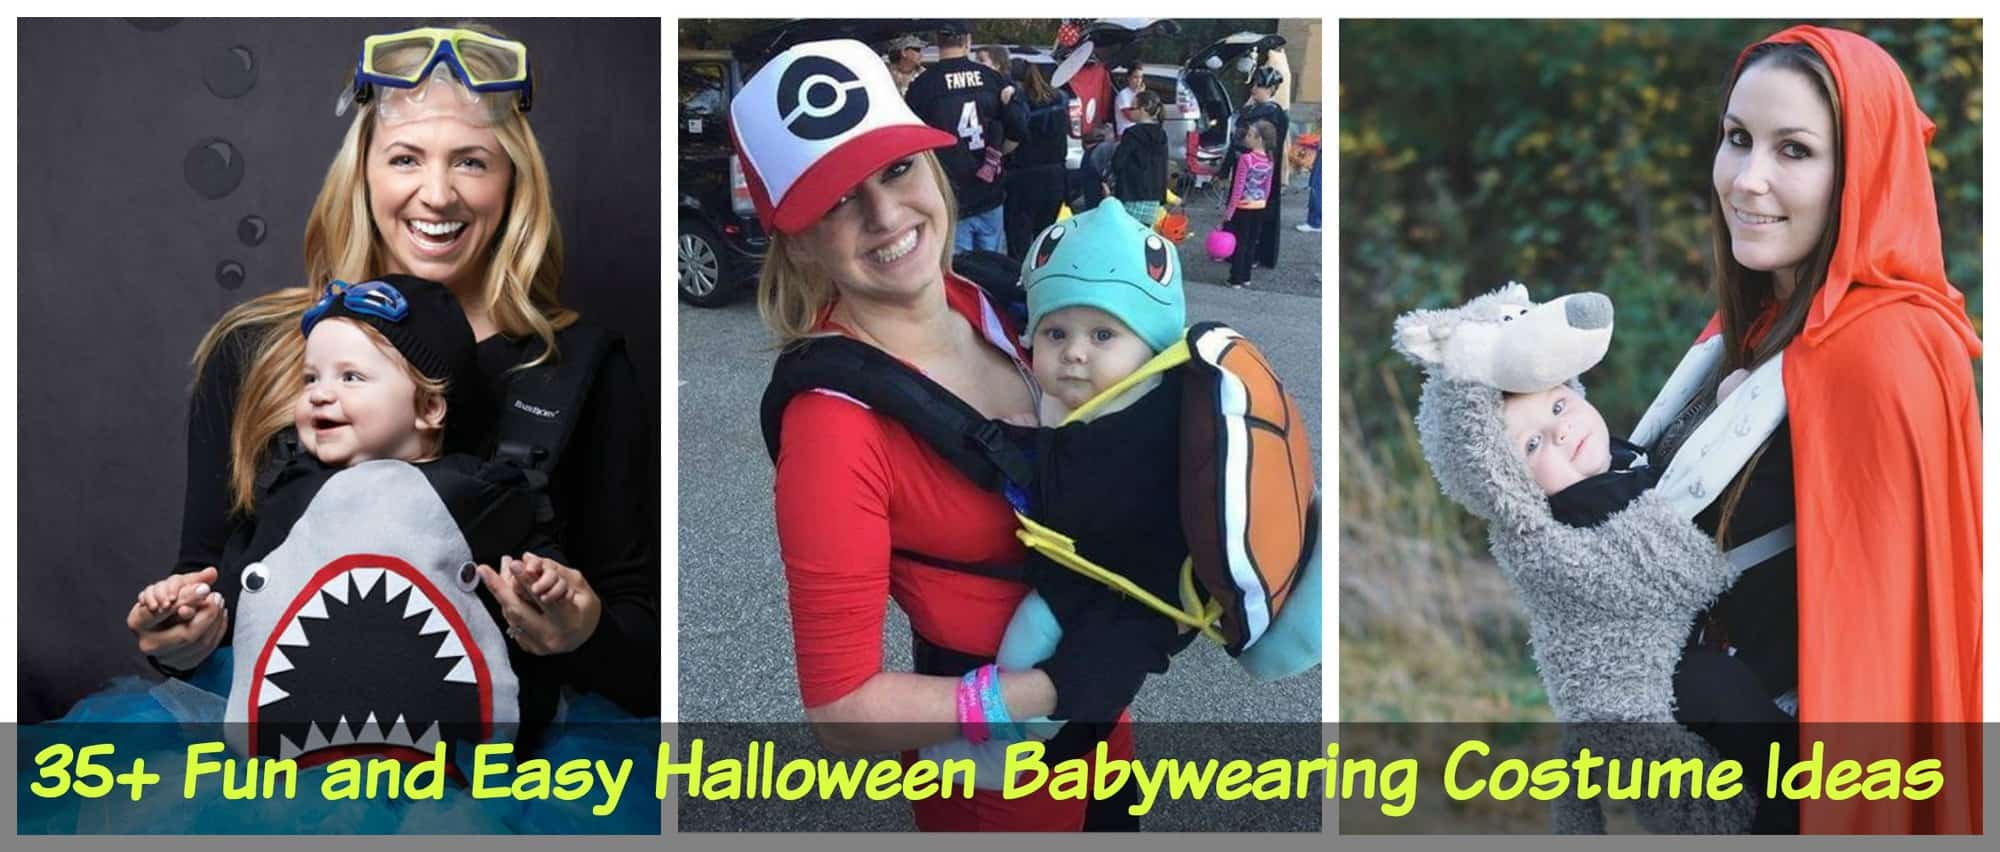 Halloween Babywearing Costume Ideas via LittleMissKate.ca